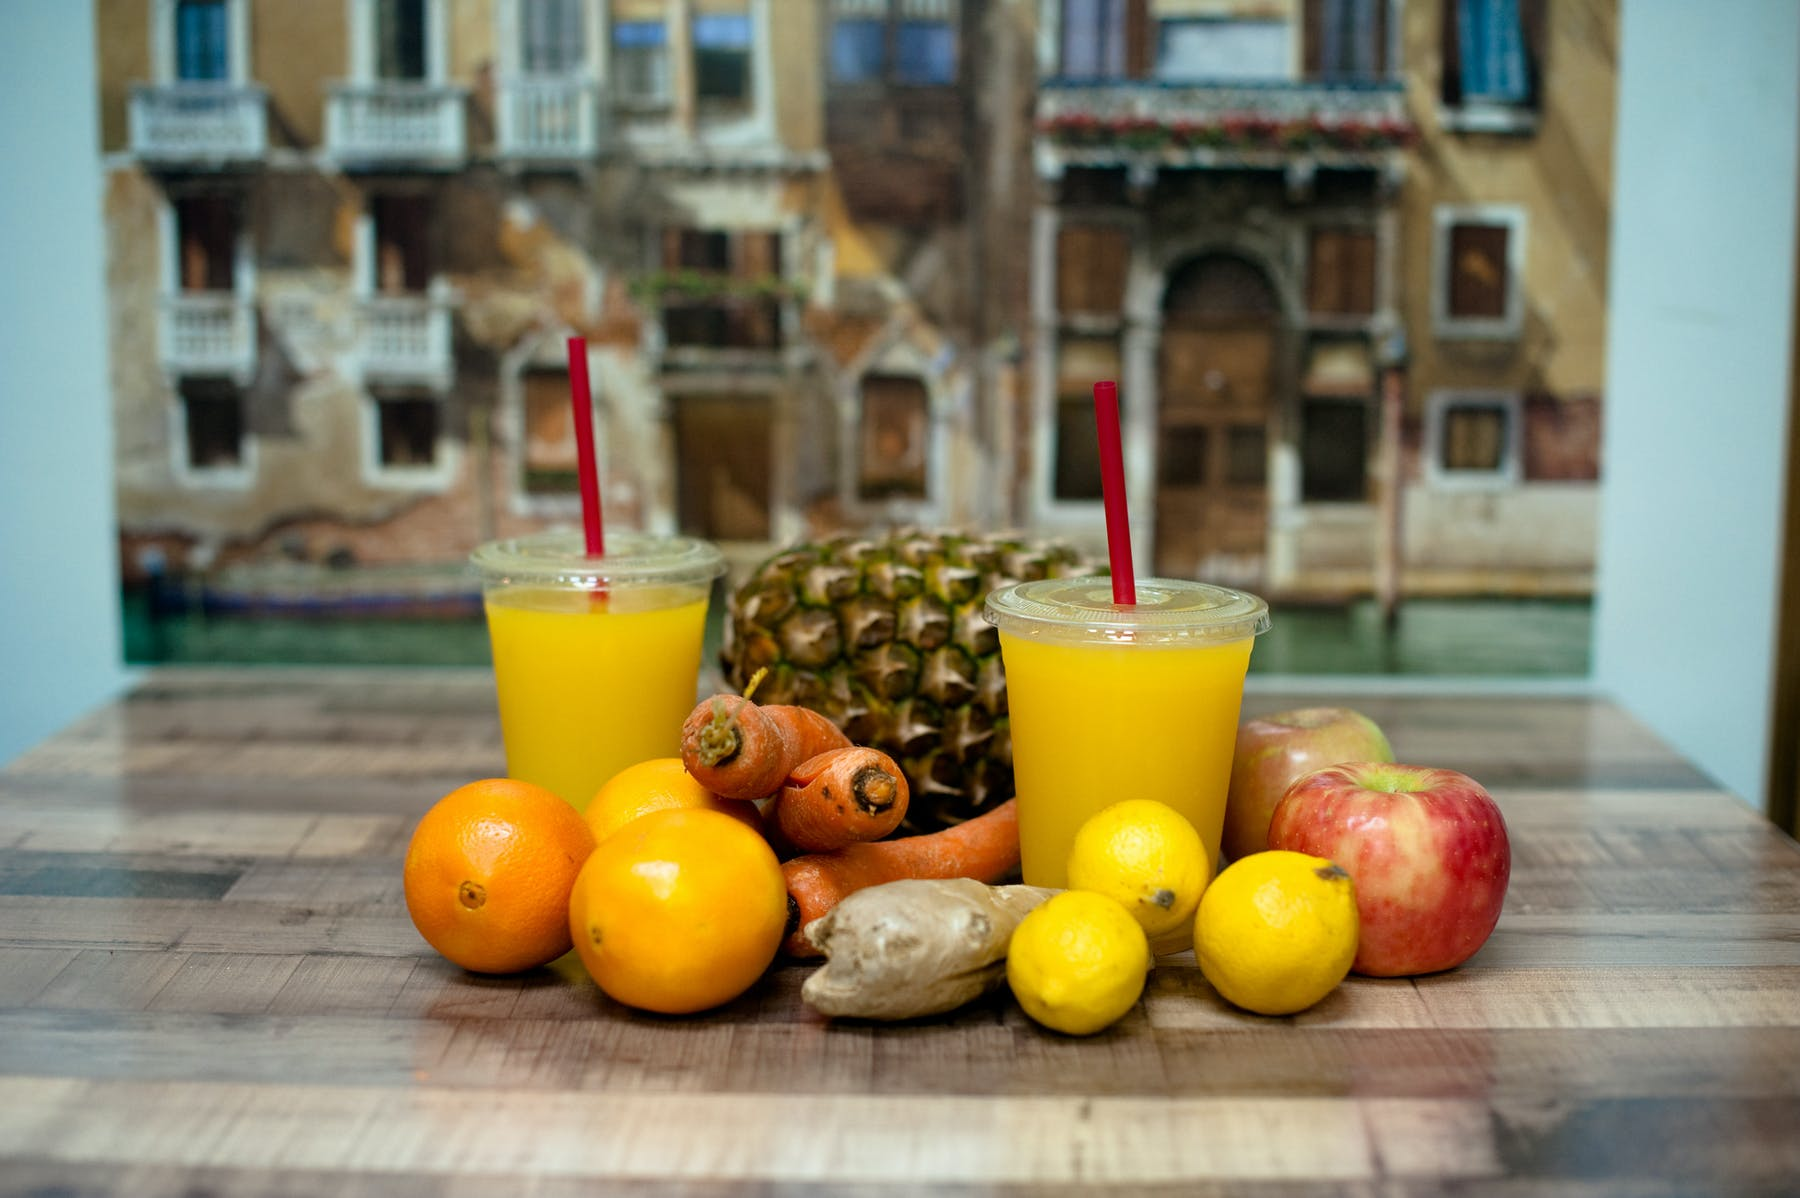 two orange juices sitting on a wooden table with other fruits